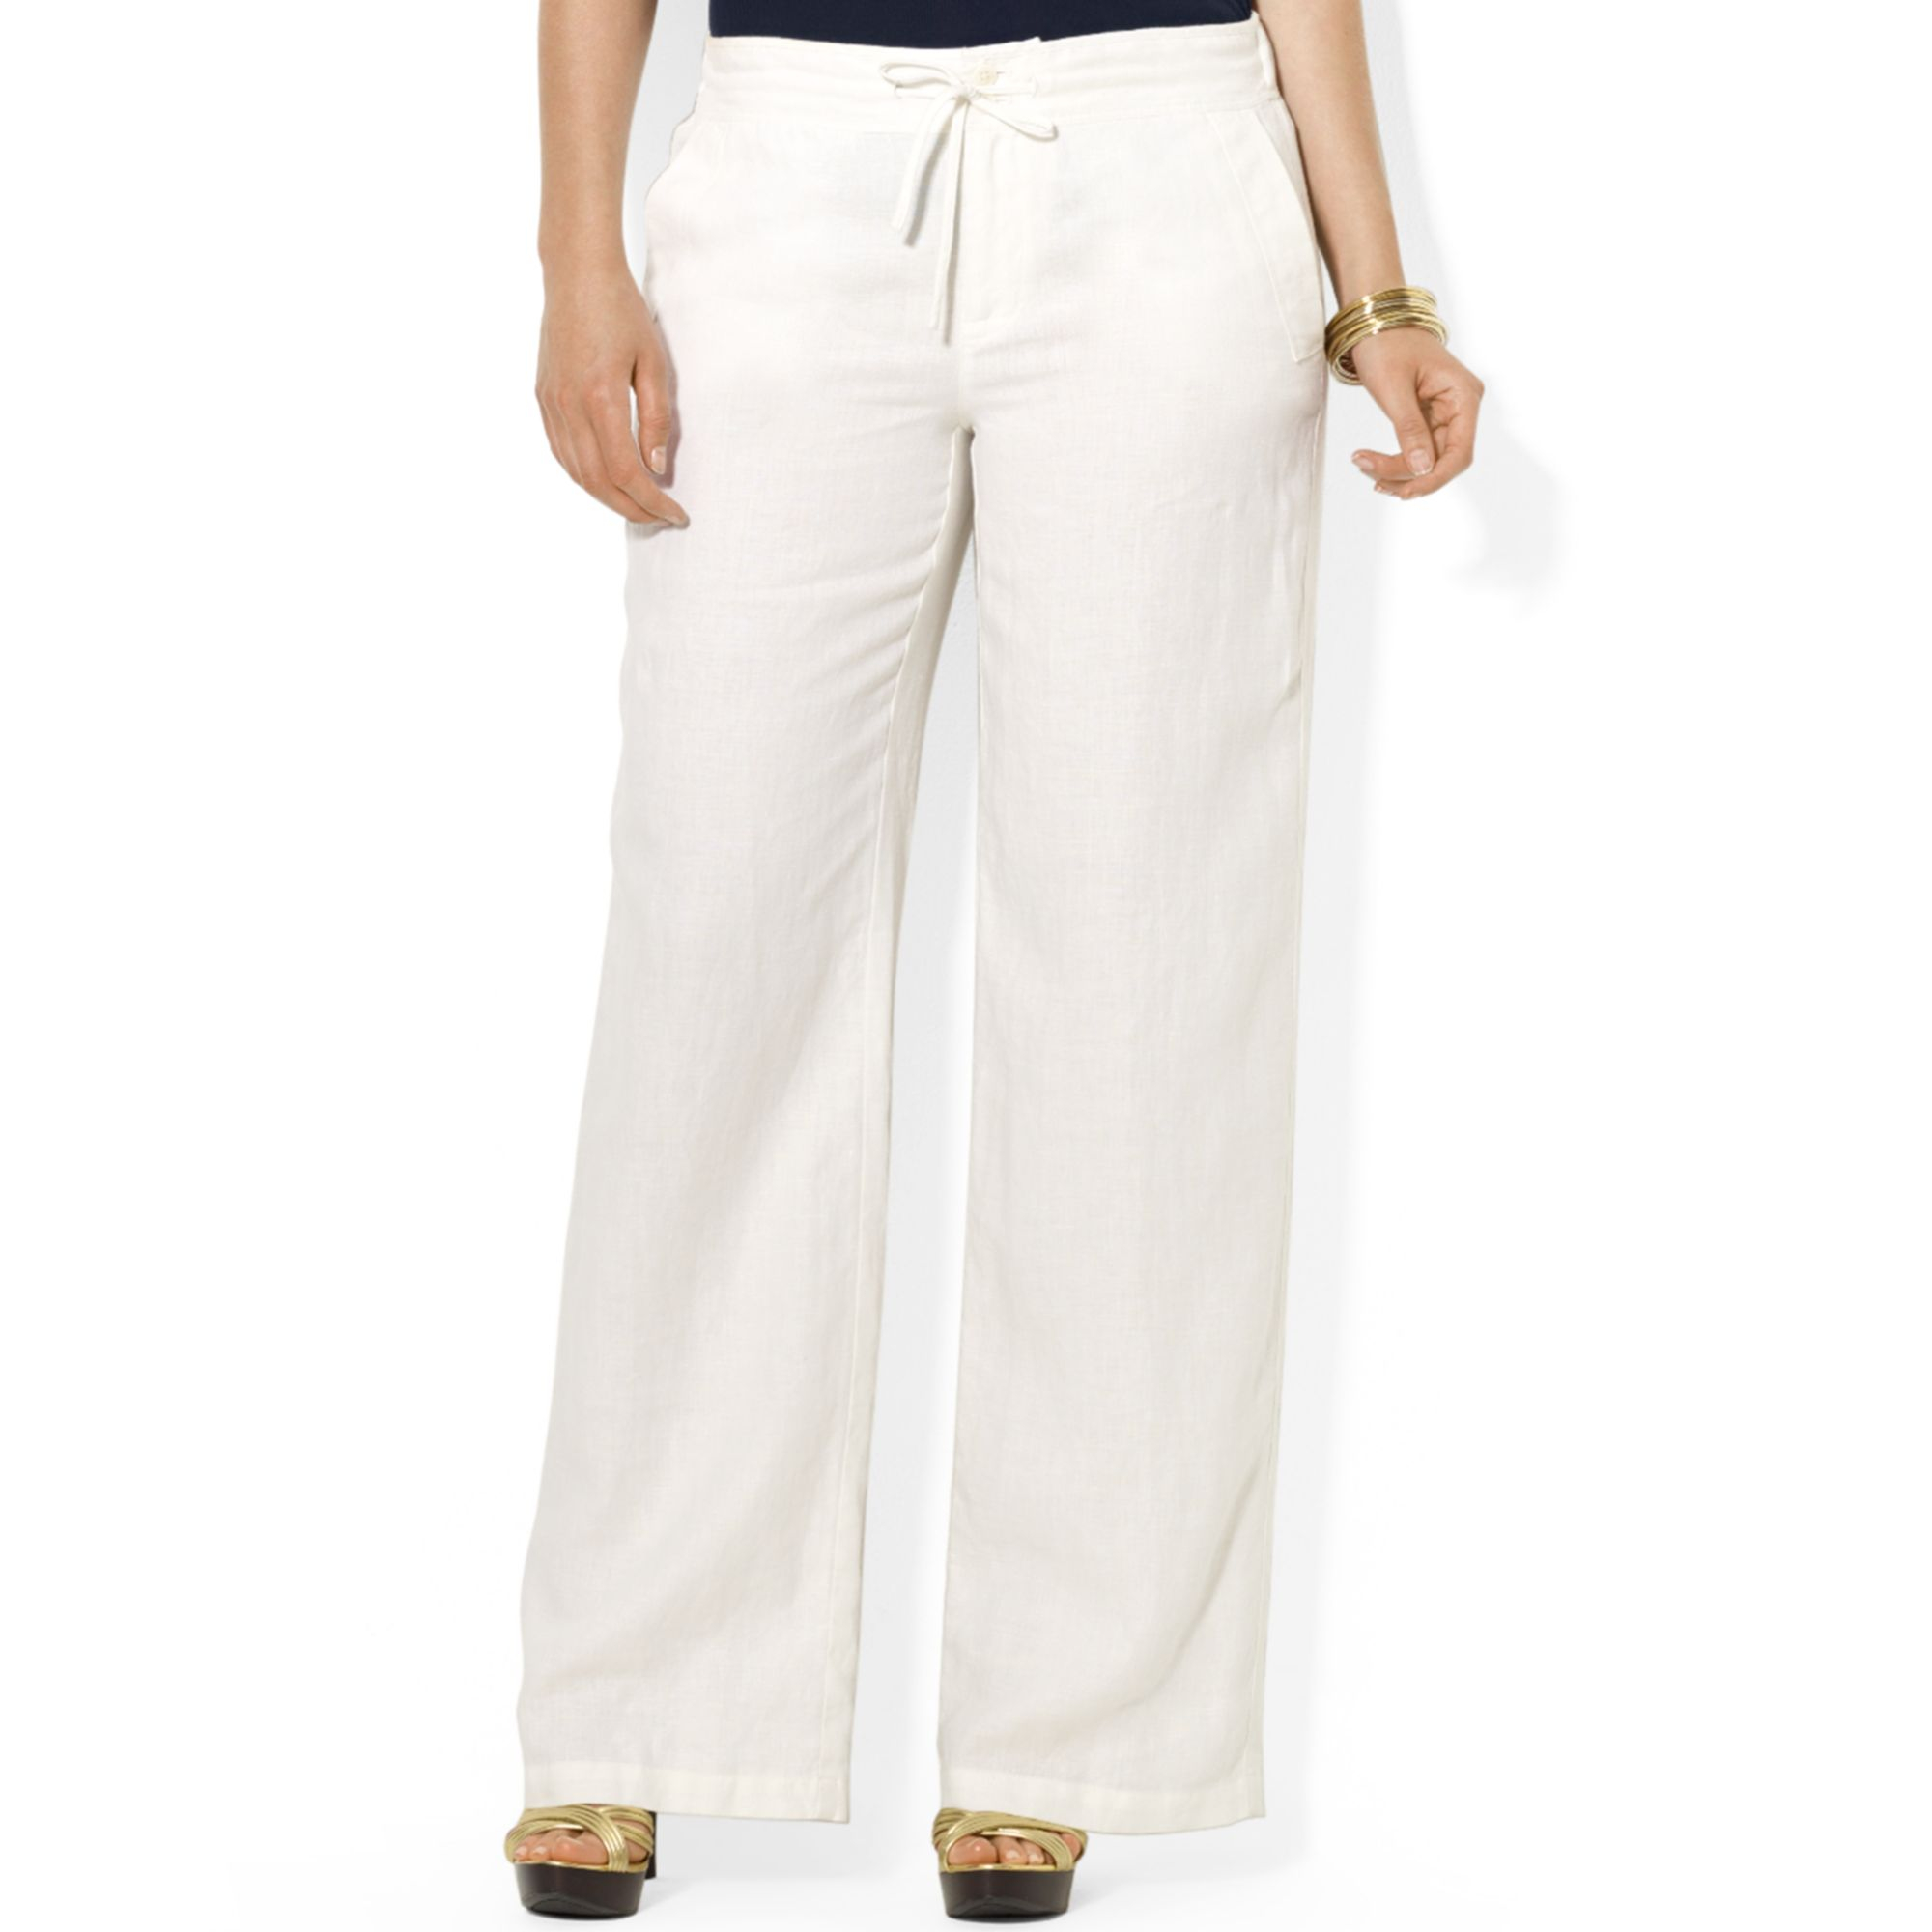 053ec3964e1a Lauren by Ralph Lauren Plus Size Wideleg Linen Pants in White - Lyst